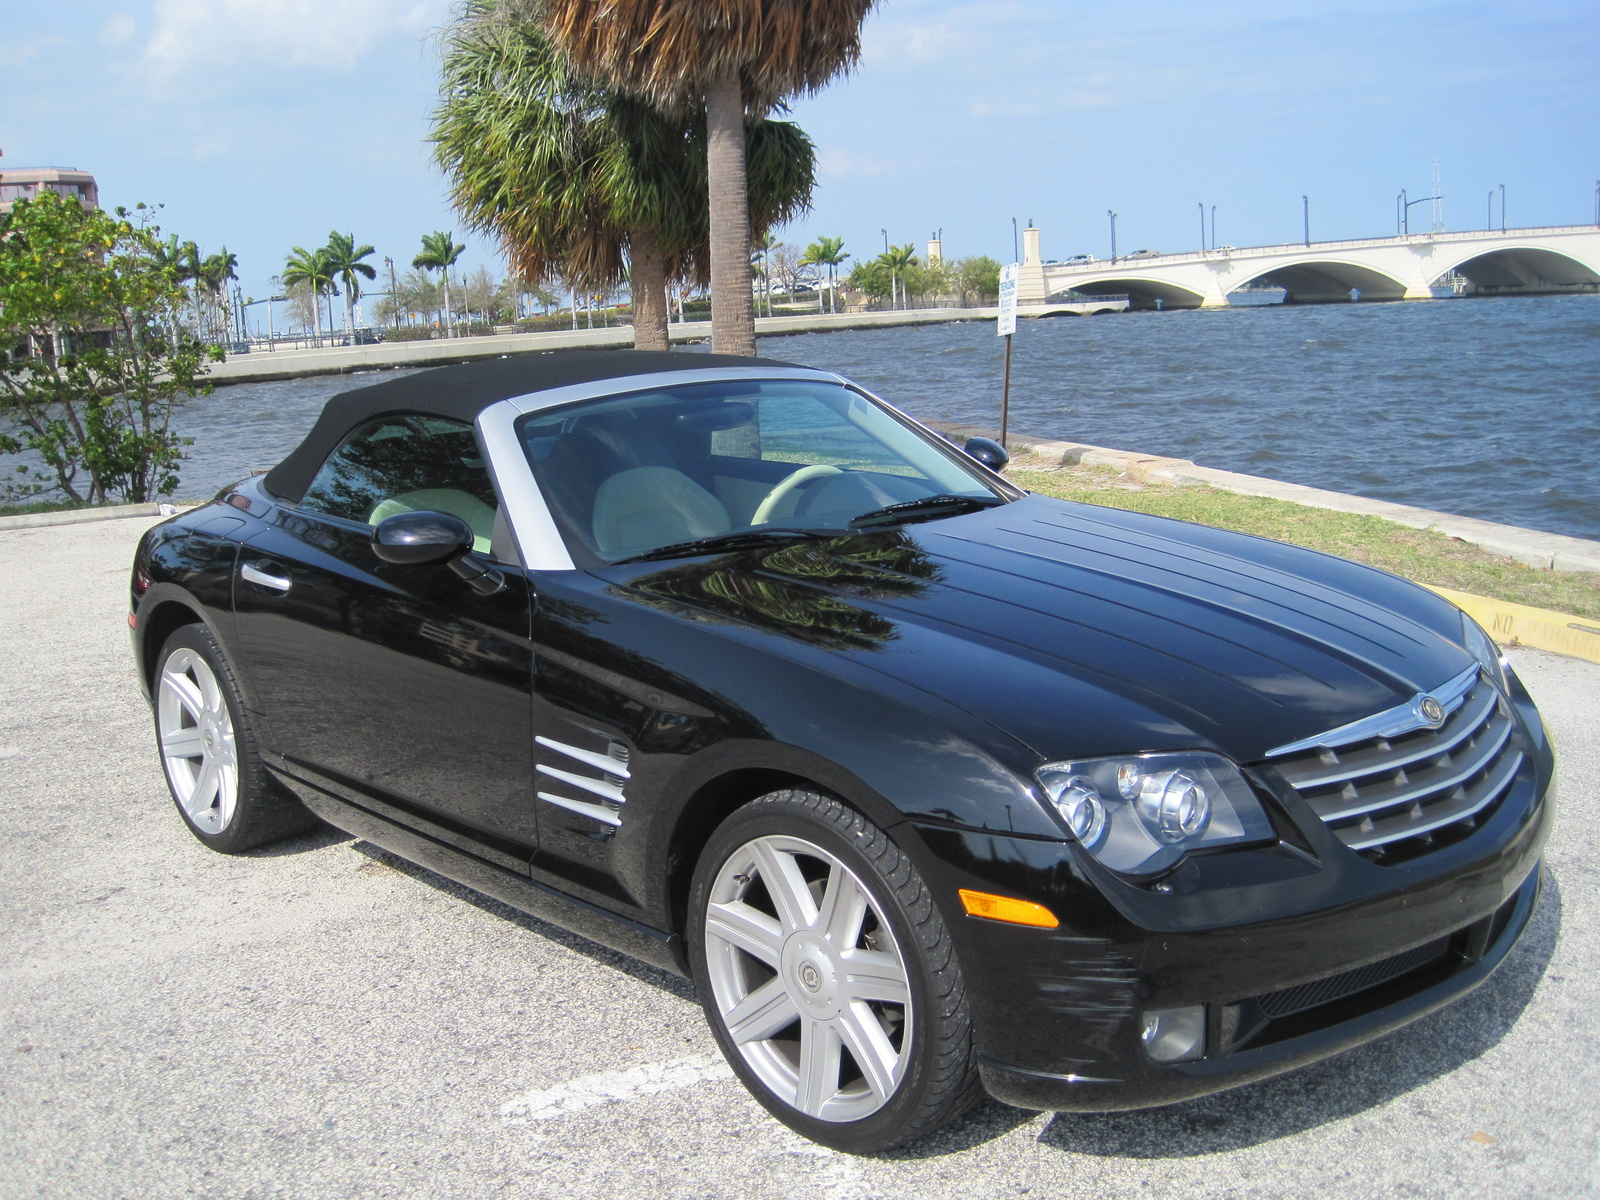 2008 chrysler crossfire pictures cargurus. Black Bedroom Furniture Sets. Home Design Ideas